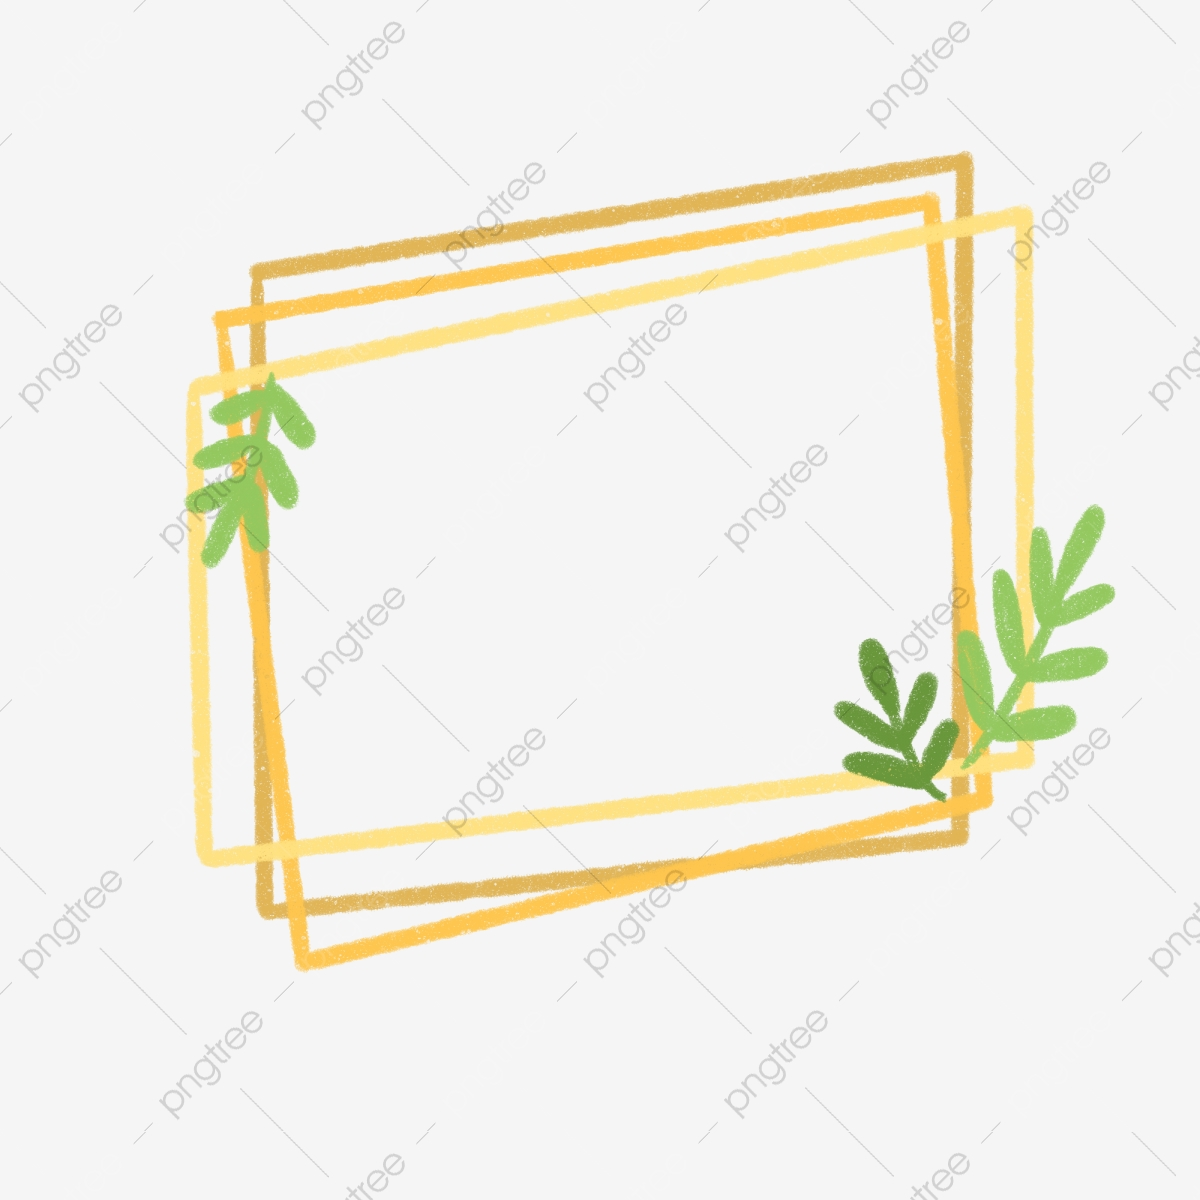 Square Leaf Hand Painted Aesthetic Square Leaf Hand Painted Png Transparent Clipart Image And Psd File For Free Download